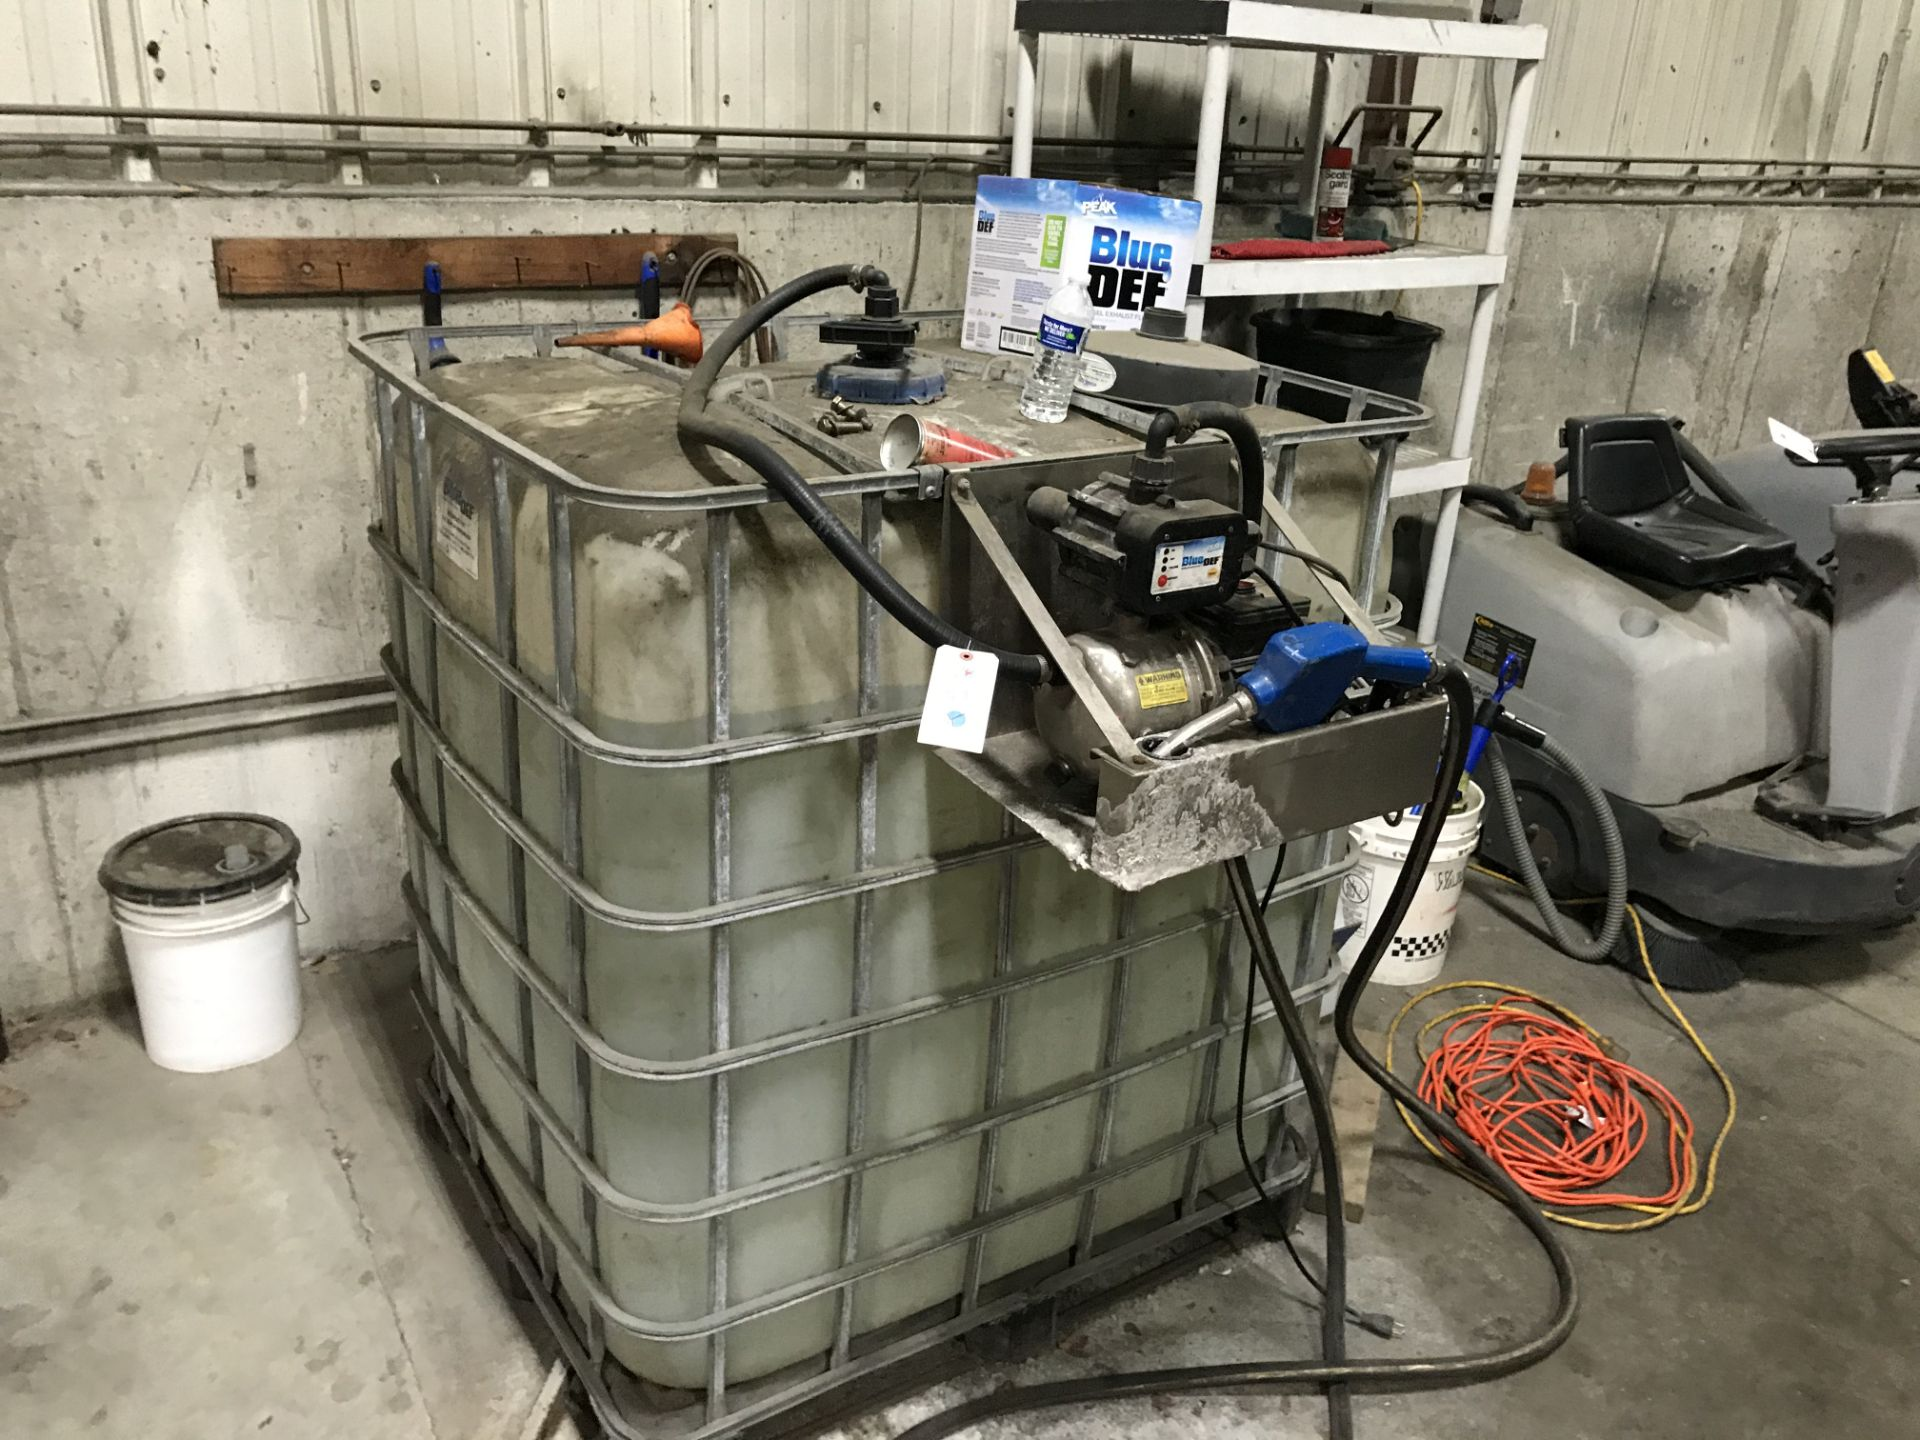 Lot 28 - {LOT} 330 Gallon Tote w/Approx 275 Gallons of Blue Def Blue Diesel Exhaust Fluid w/Pump